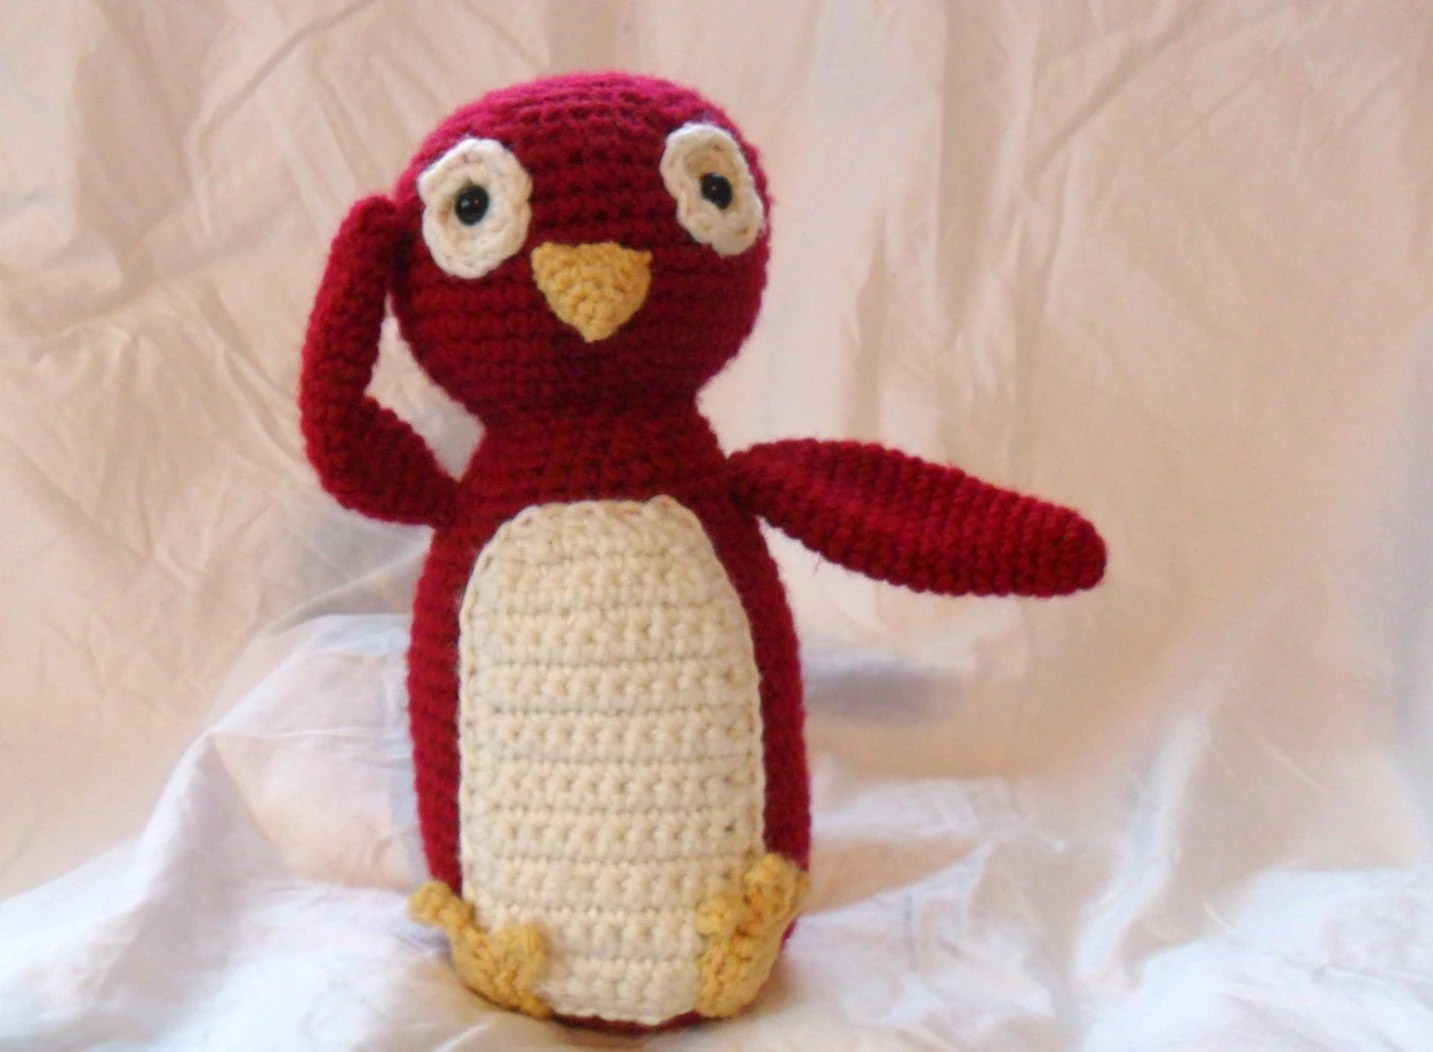 Red Stuffed Penguin, Stuffed Zoo Animal, Plush Penguin, Kids Toy, Plush Doll, Crocheted Animal,  Stuffed Animal - Patrick the Penguin